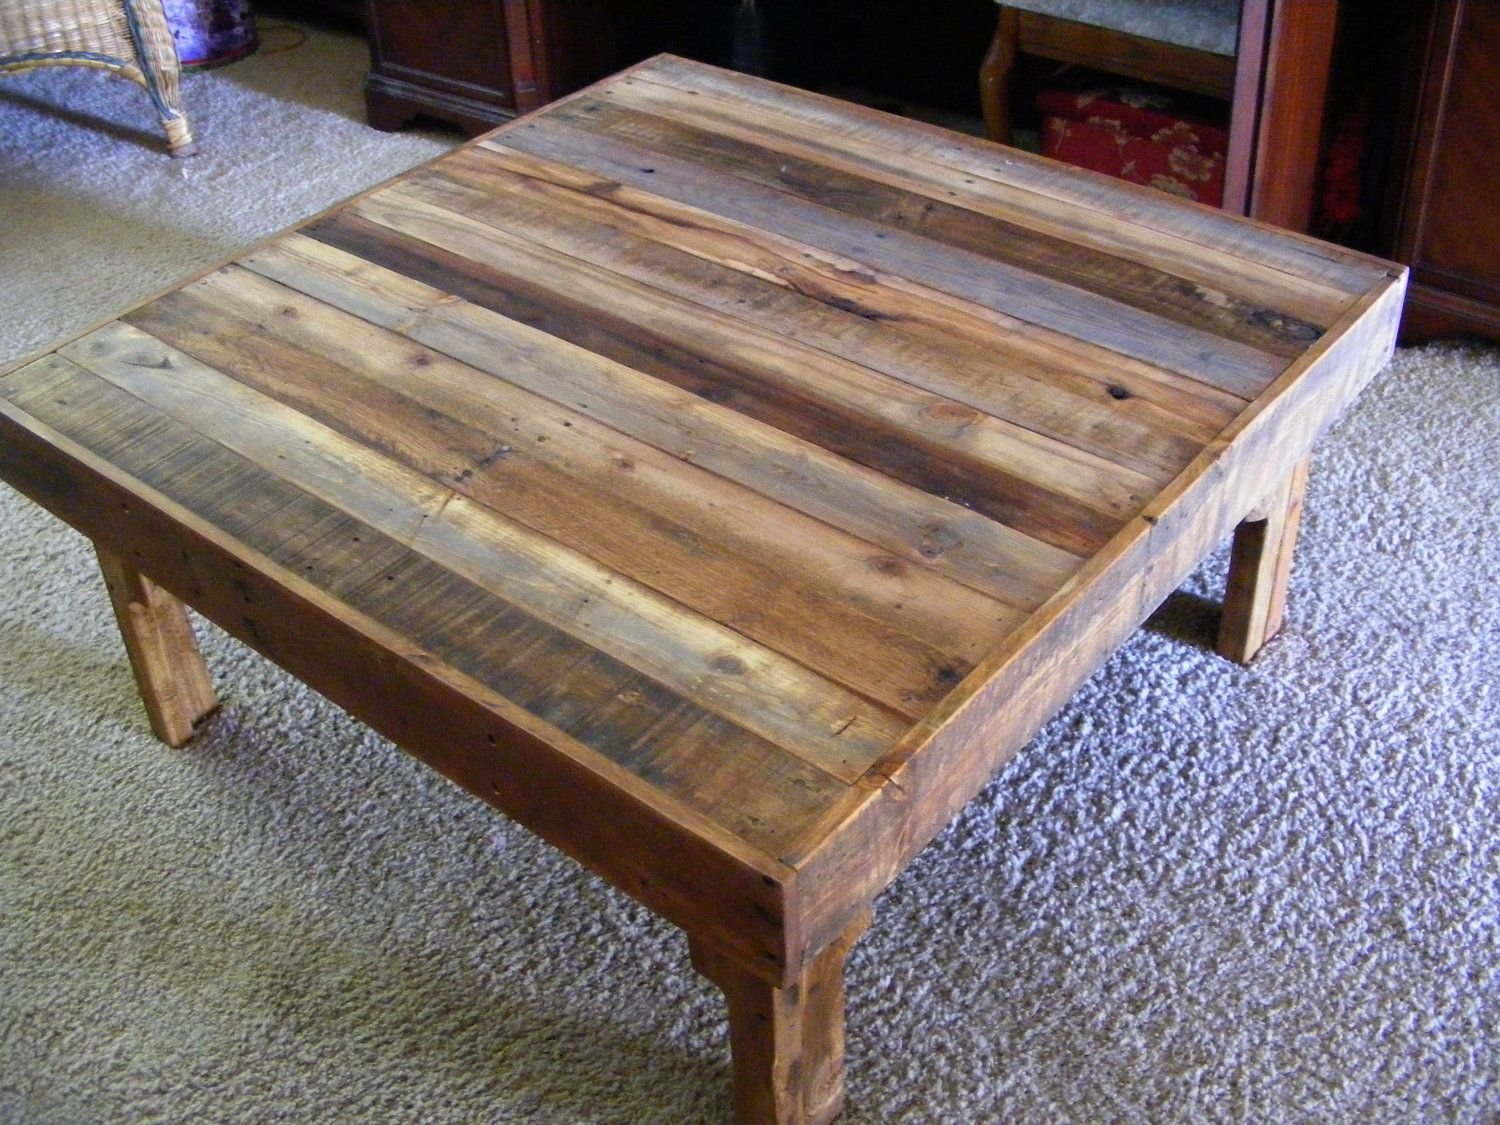 Best 20+ Rustic wood coffee table ideas on Pinterest | Rustic coffee tables,  Diy coffee table and Wood furniture - Best 20+ Rustic Wood Coffee Table Ideas On Pinterest Rustic